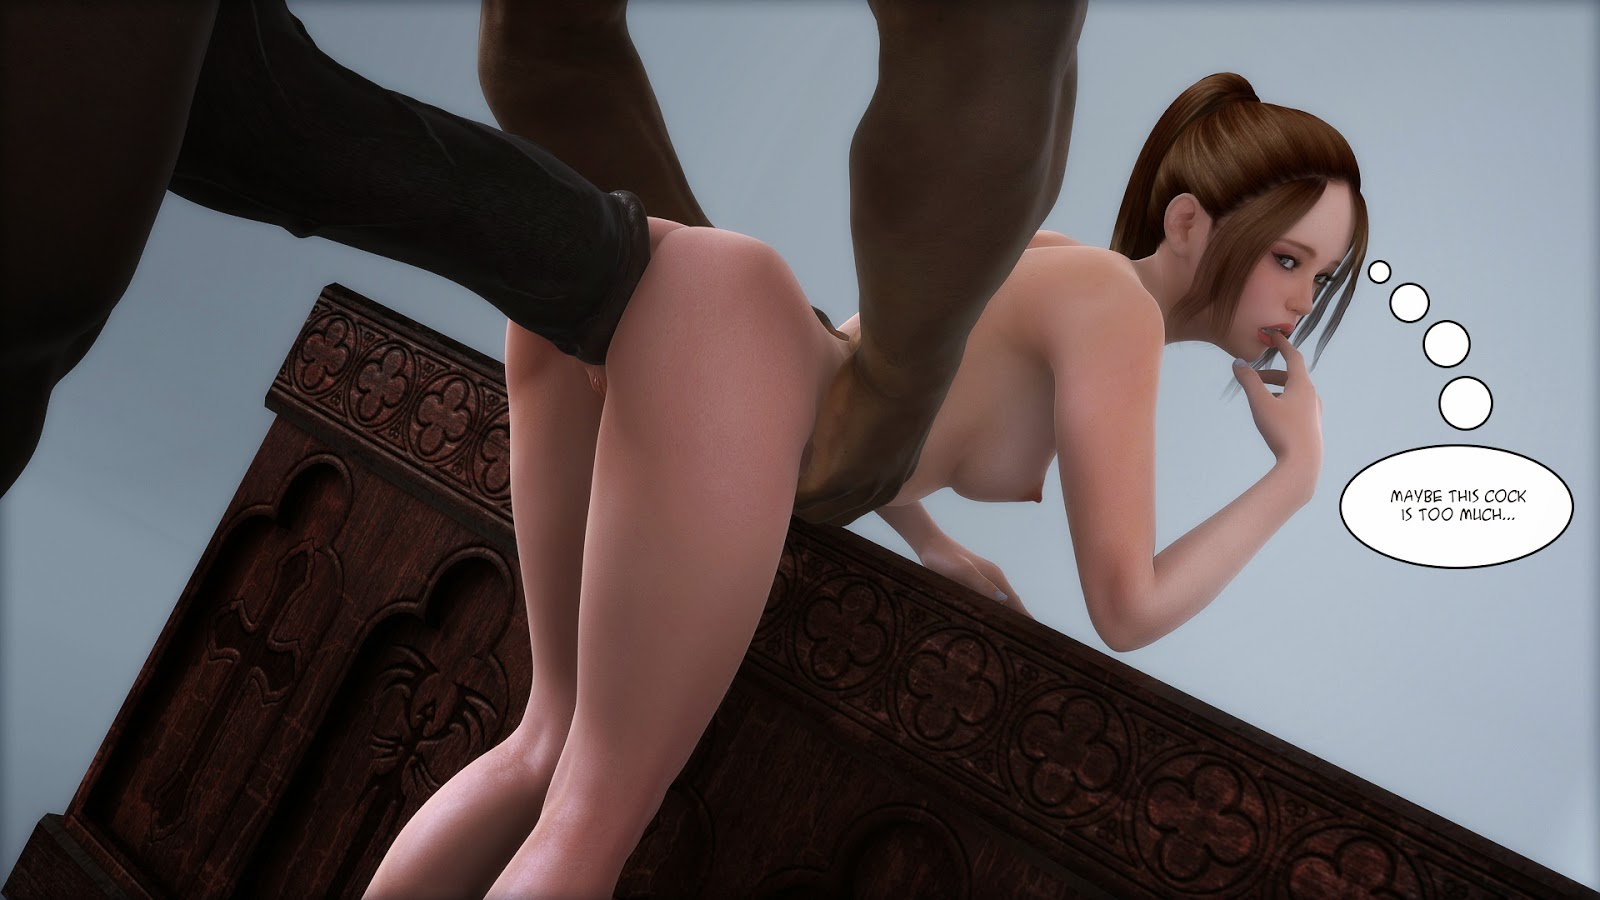 3dcartoonsex stories nude comics